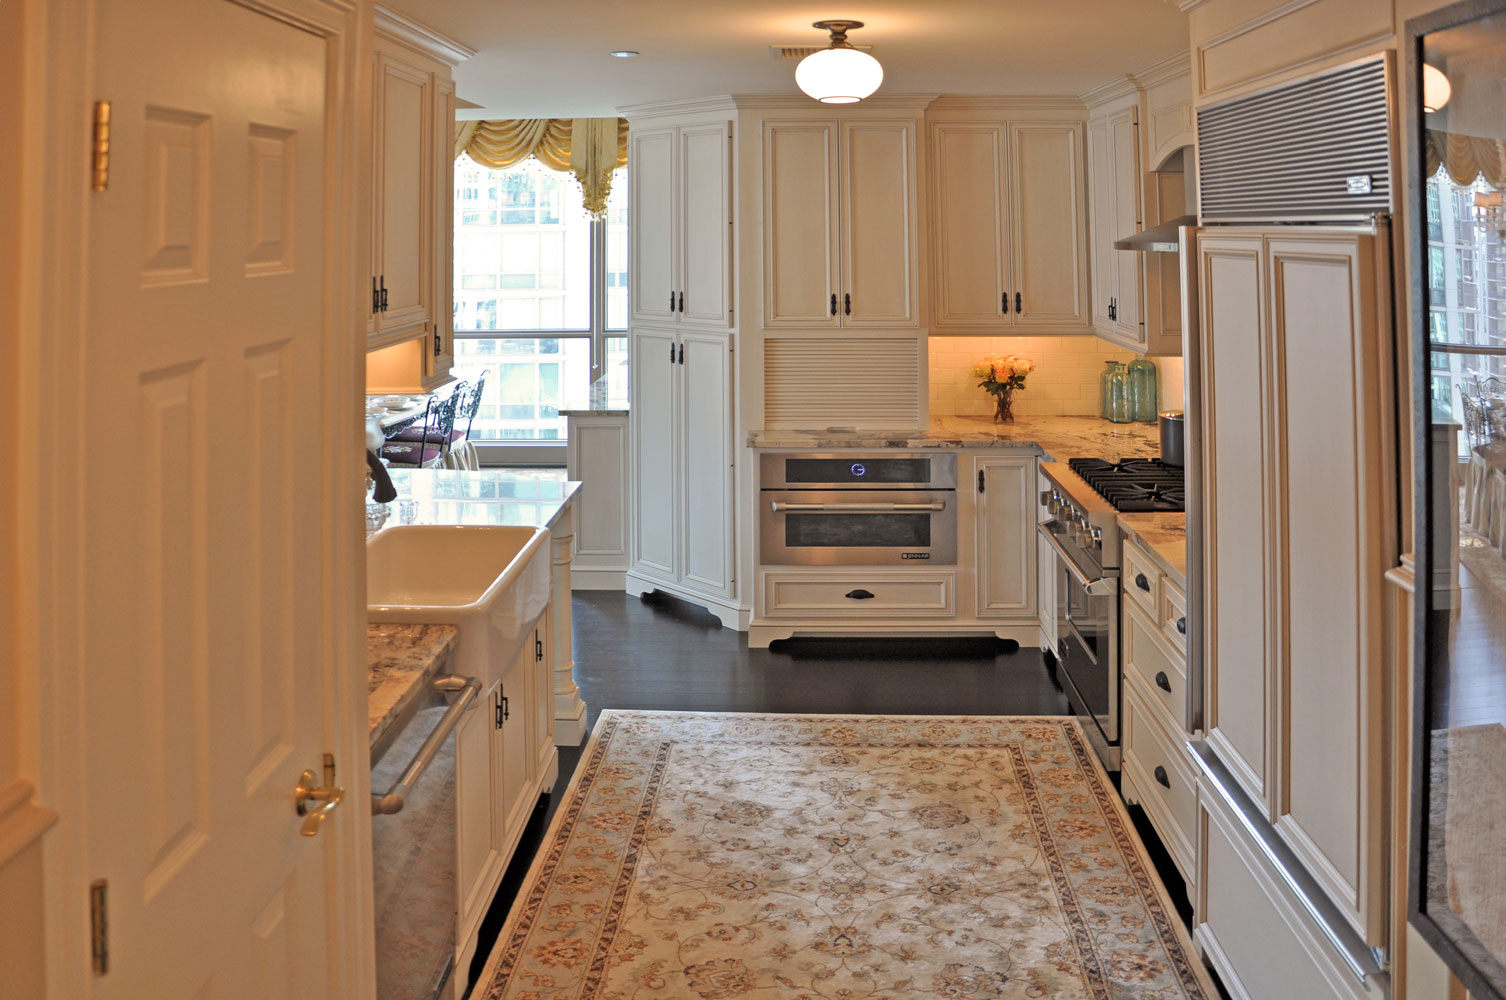 Luxury Home in the Sky Kitchen by Talie Jane Interiors